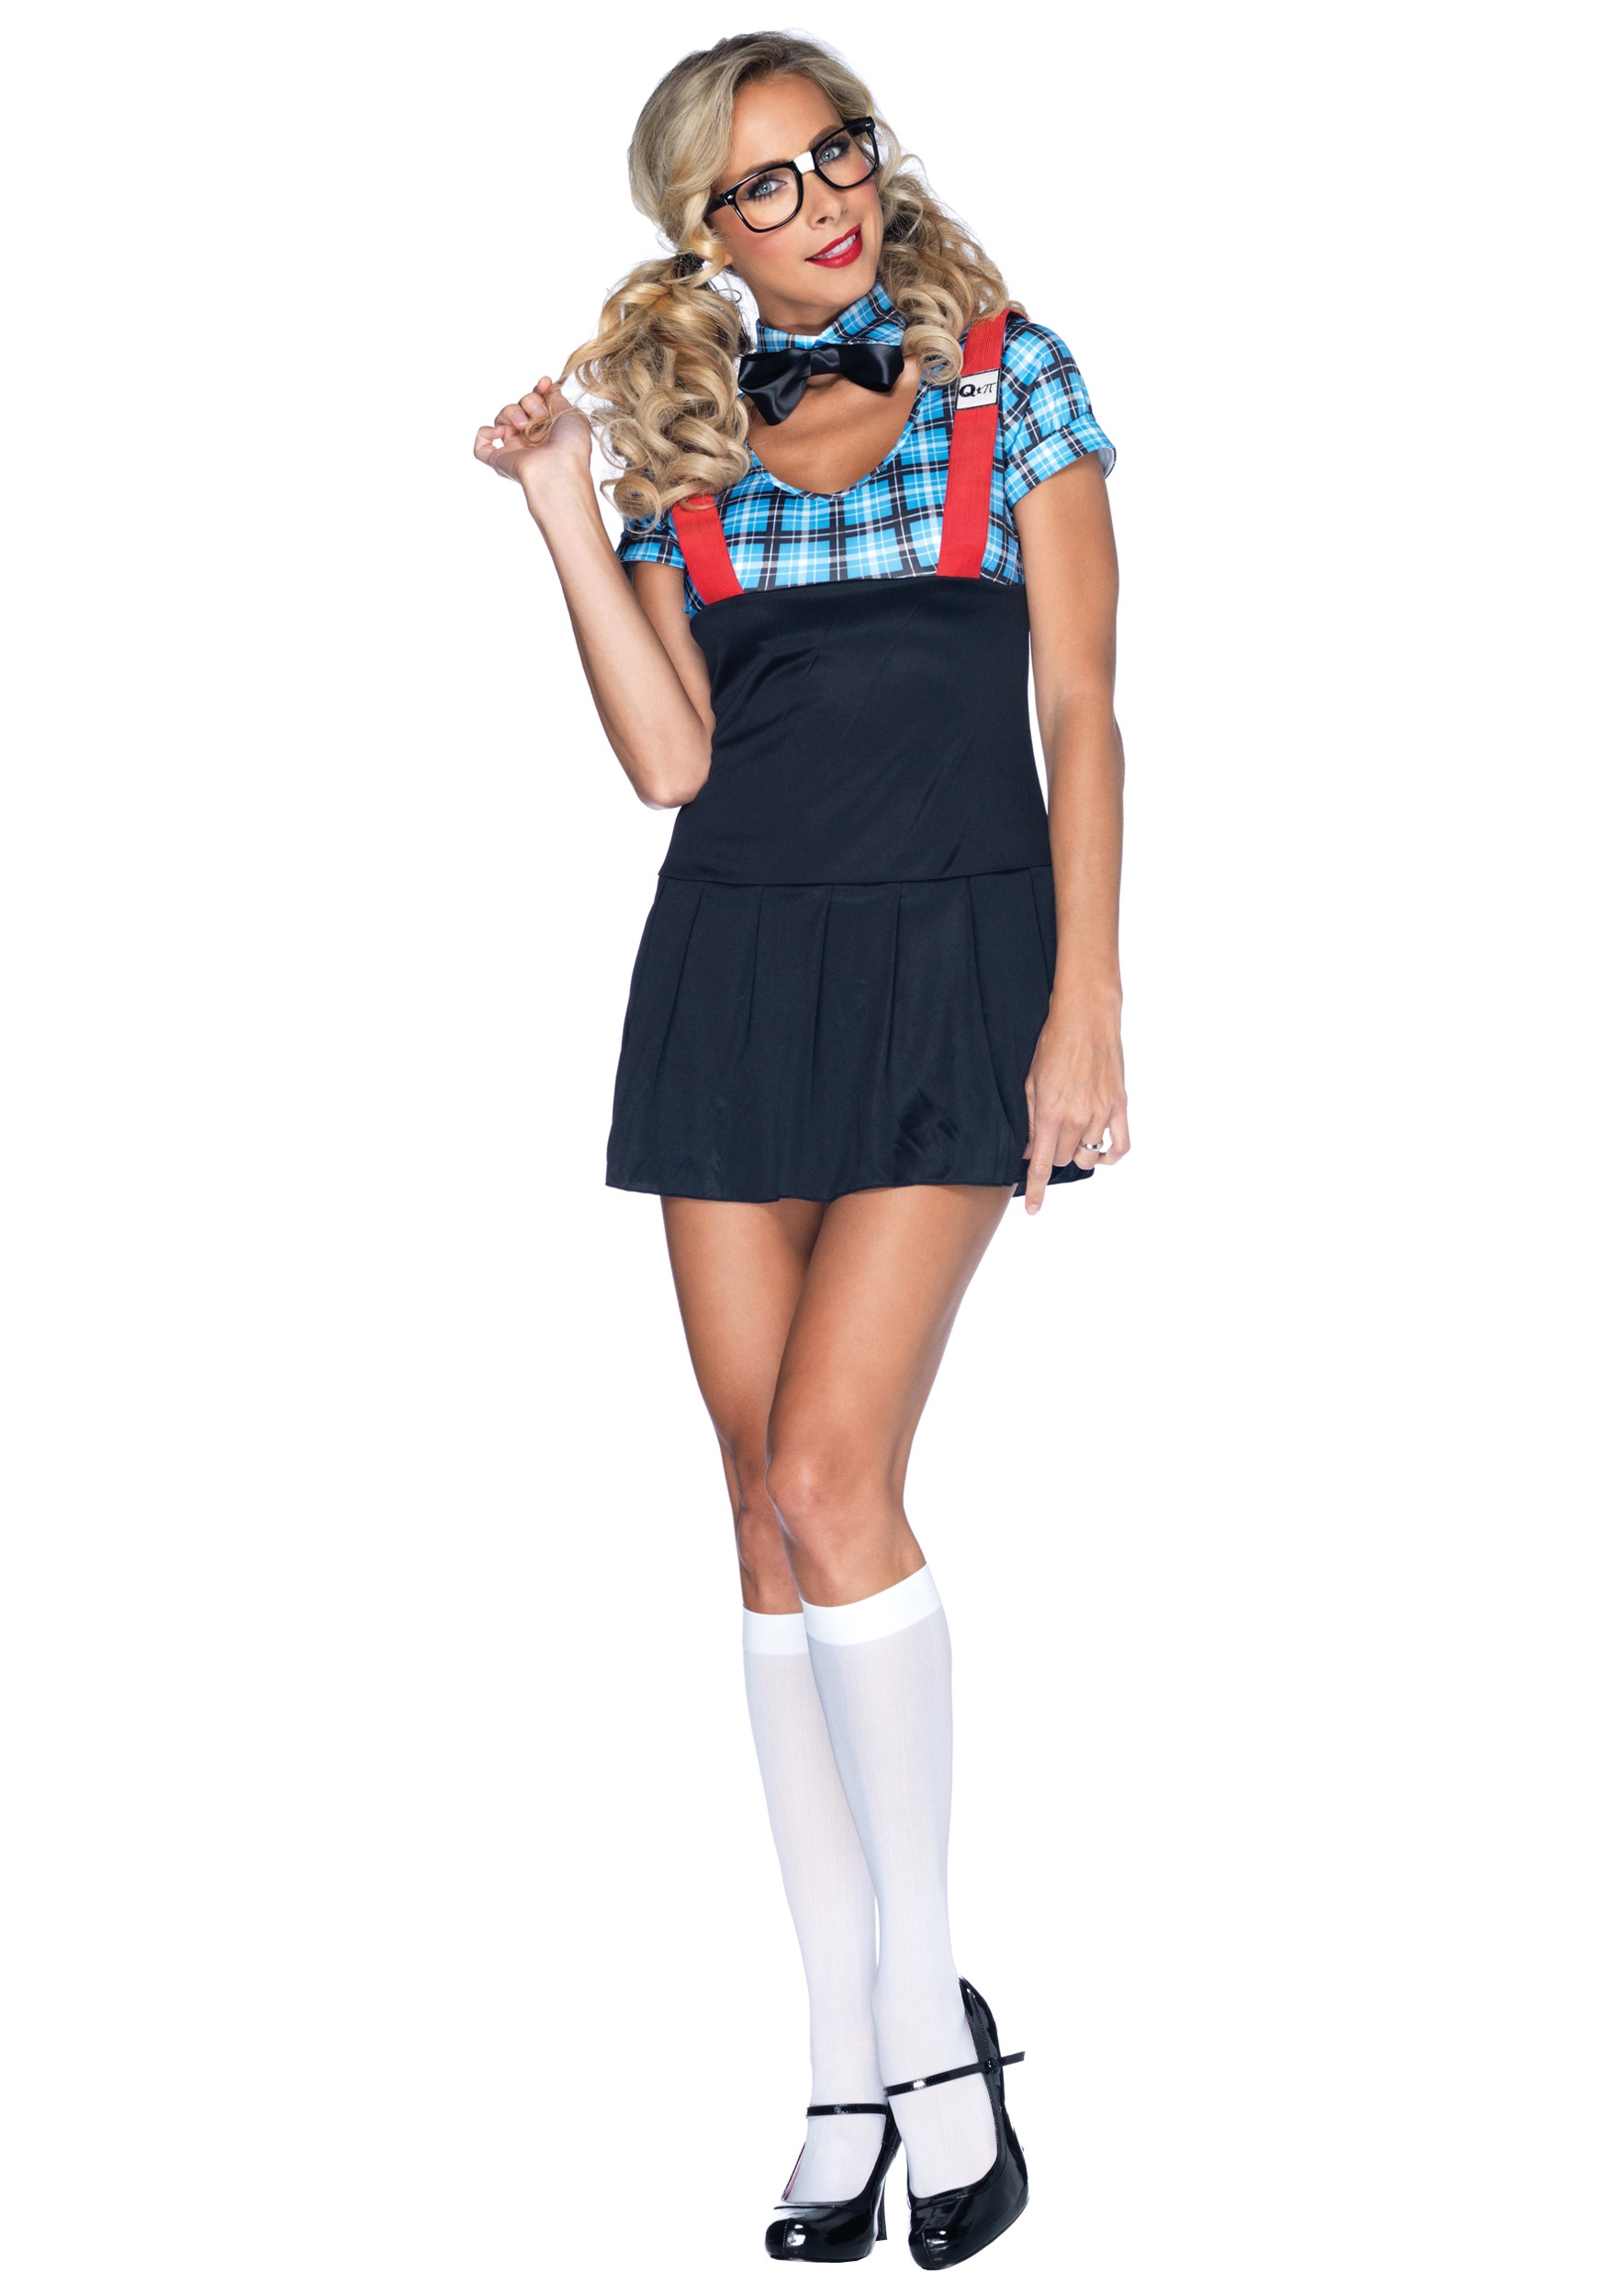 naughty nerd costume - Naughty Girl Halloween Costumes